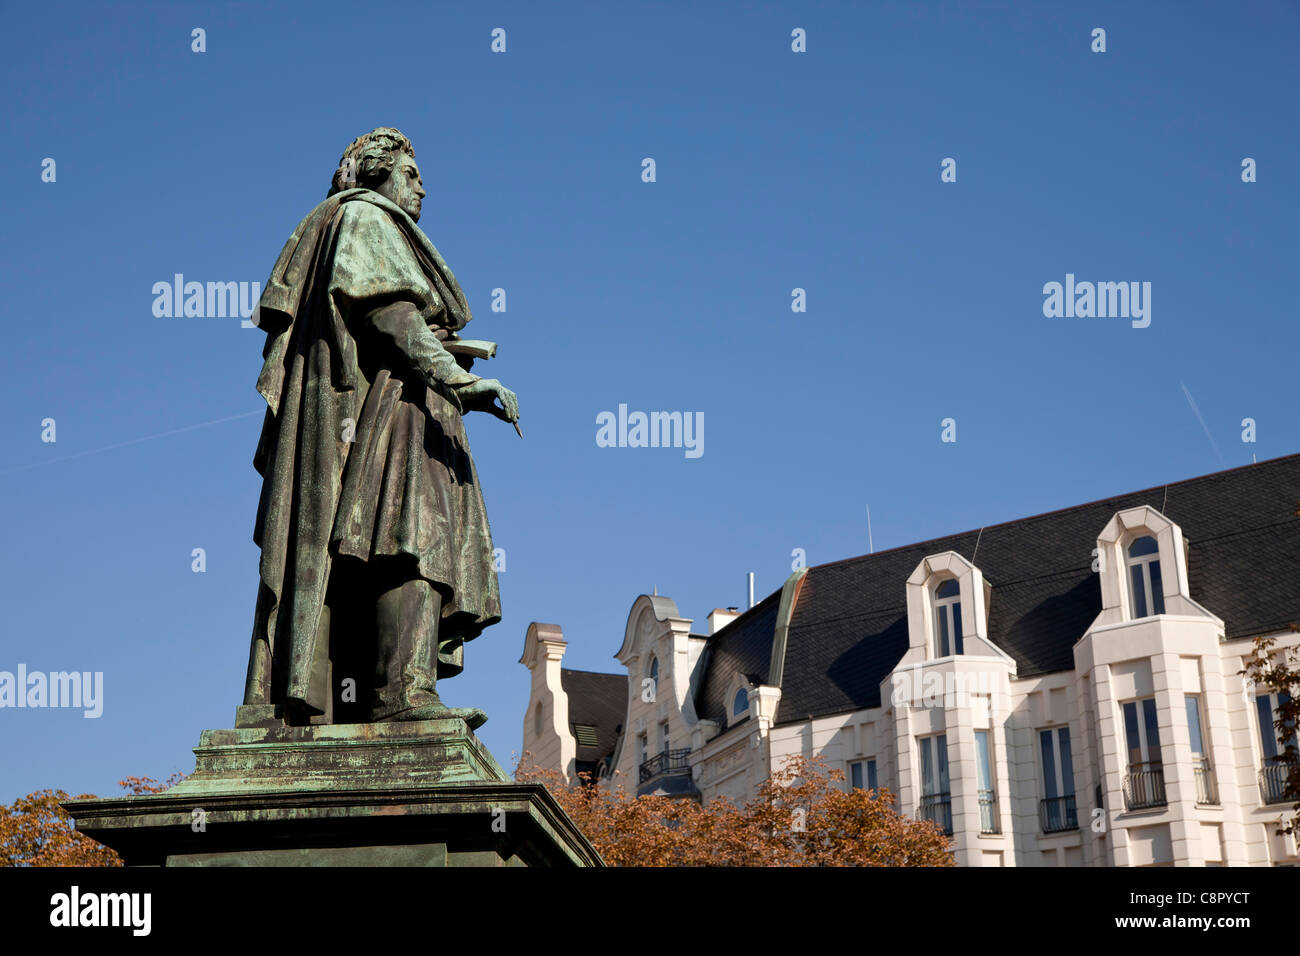 Beethoven monument on Muenster square in Bonn, North Rhine-Westphalia, Germany, - Stock Image